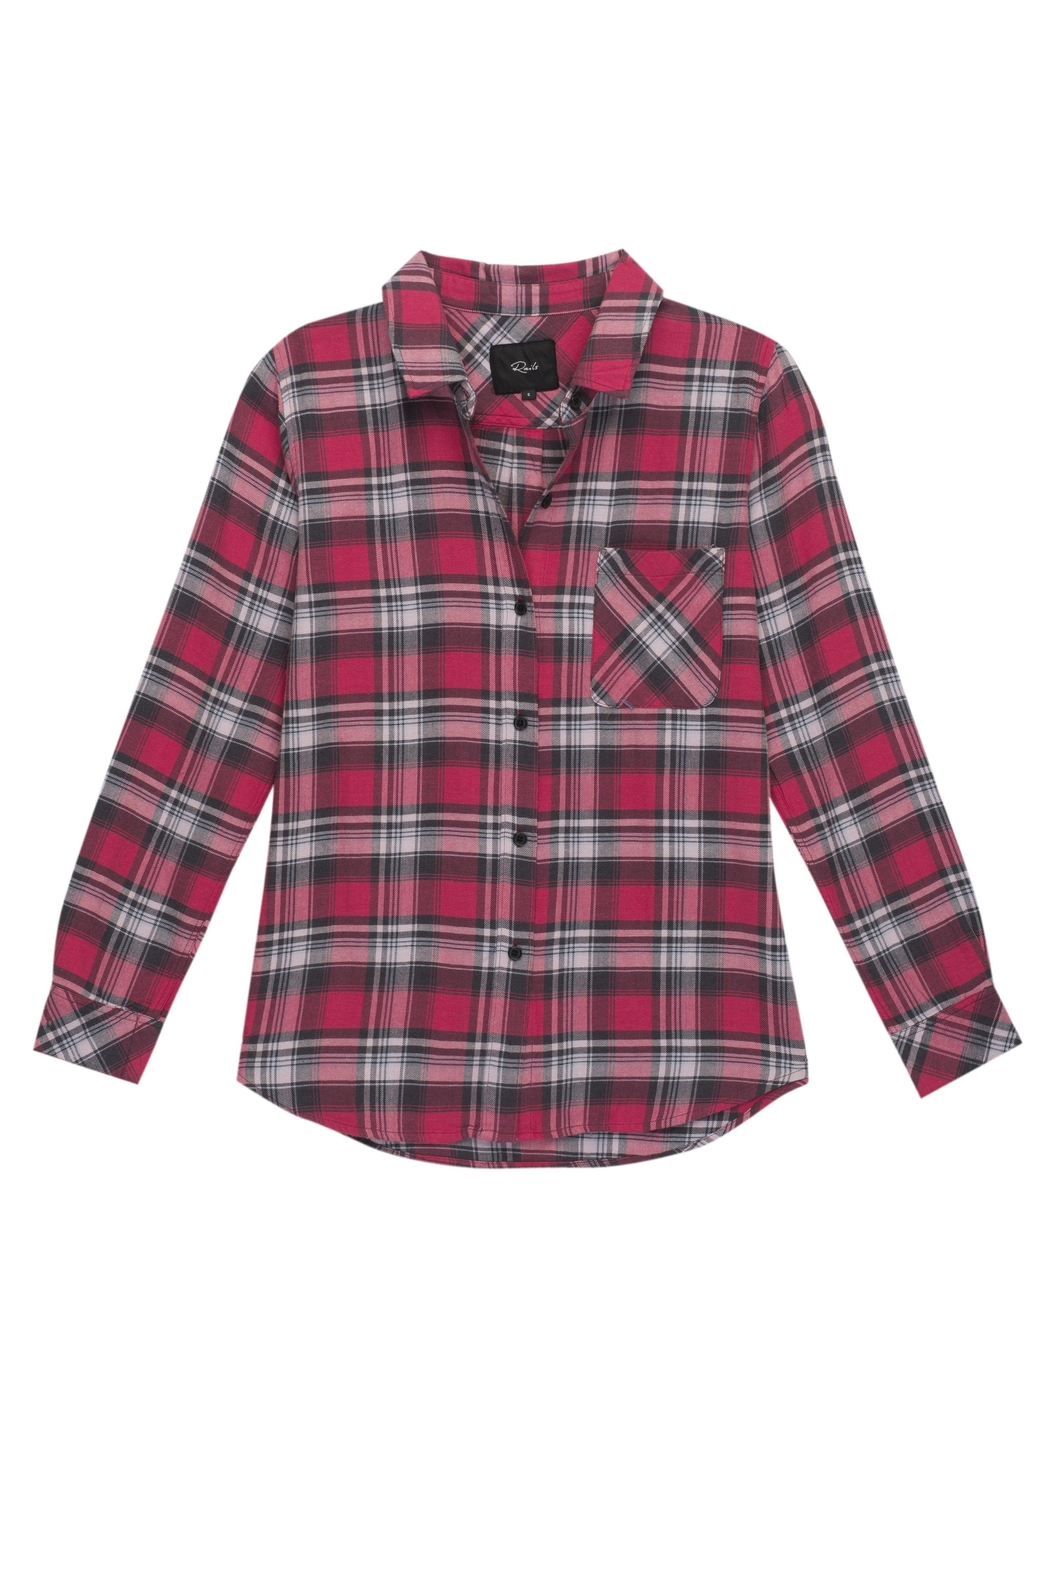 Rails Flannel Plaid Shirt - Main Image